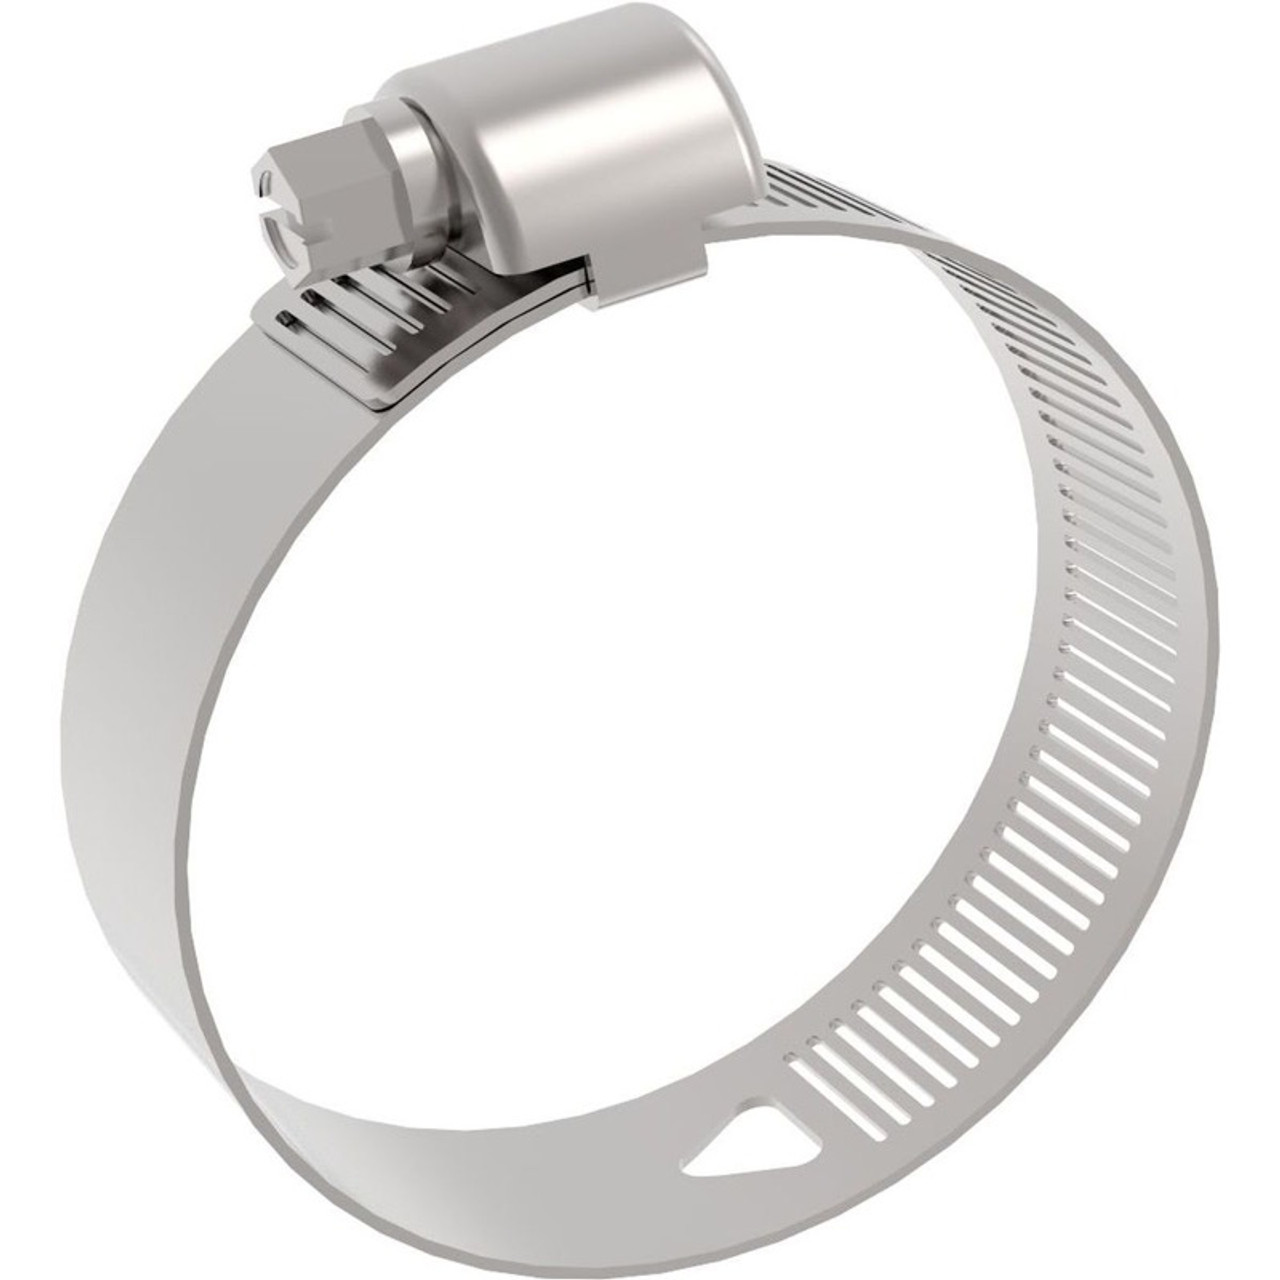 Hose Clamp #64 4""